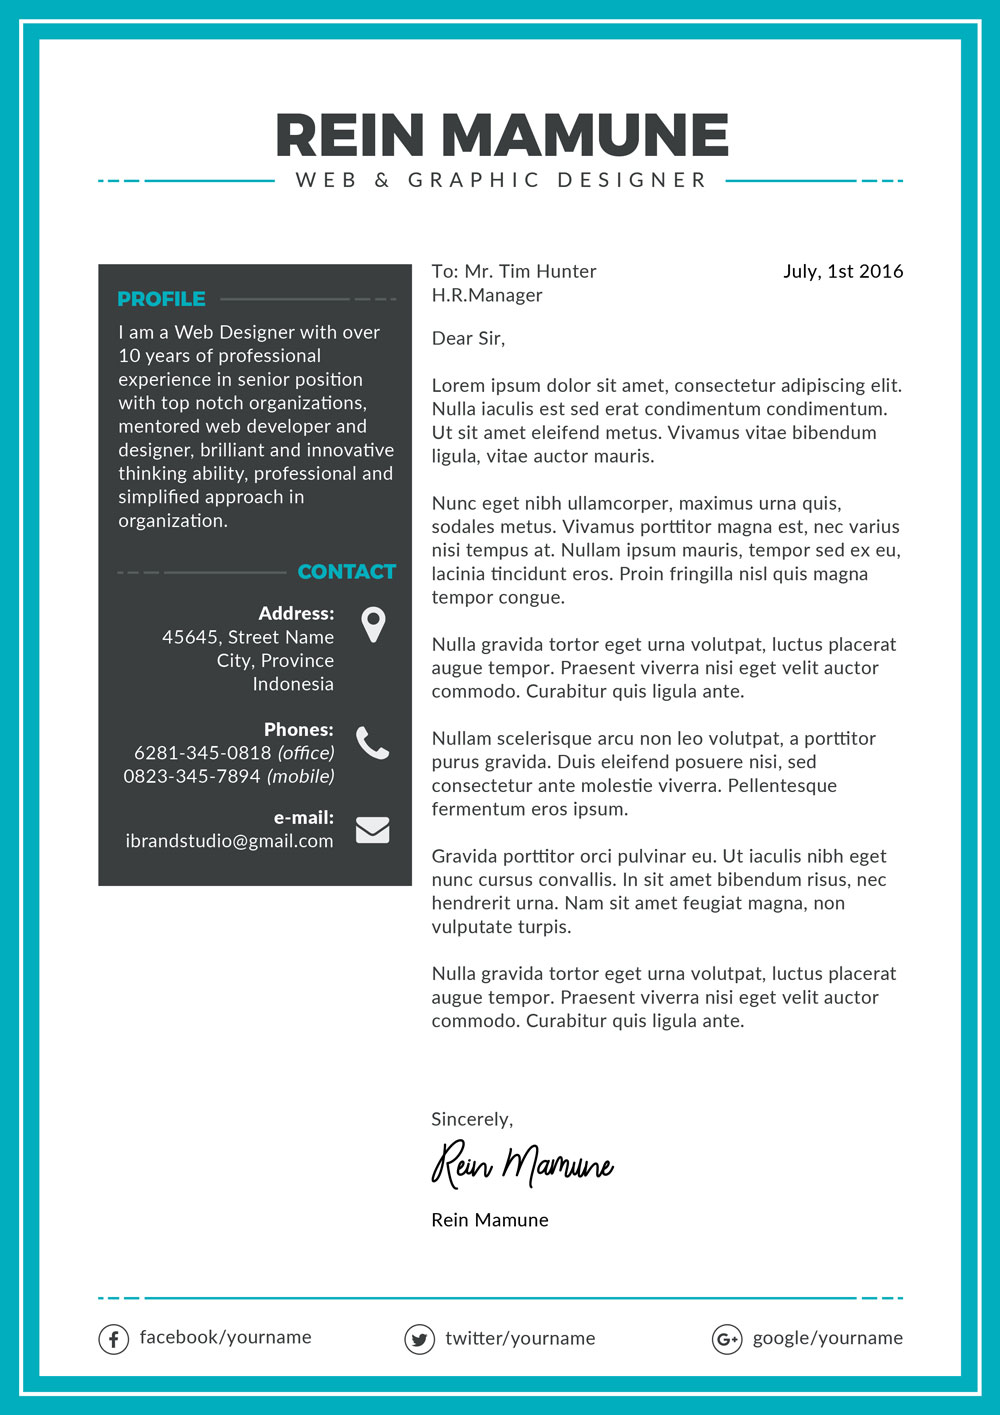 Free-PSD-Resume-Template-Cover Letter & Portfolio Design-For-Web-&-Graphic-Designer (4)